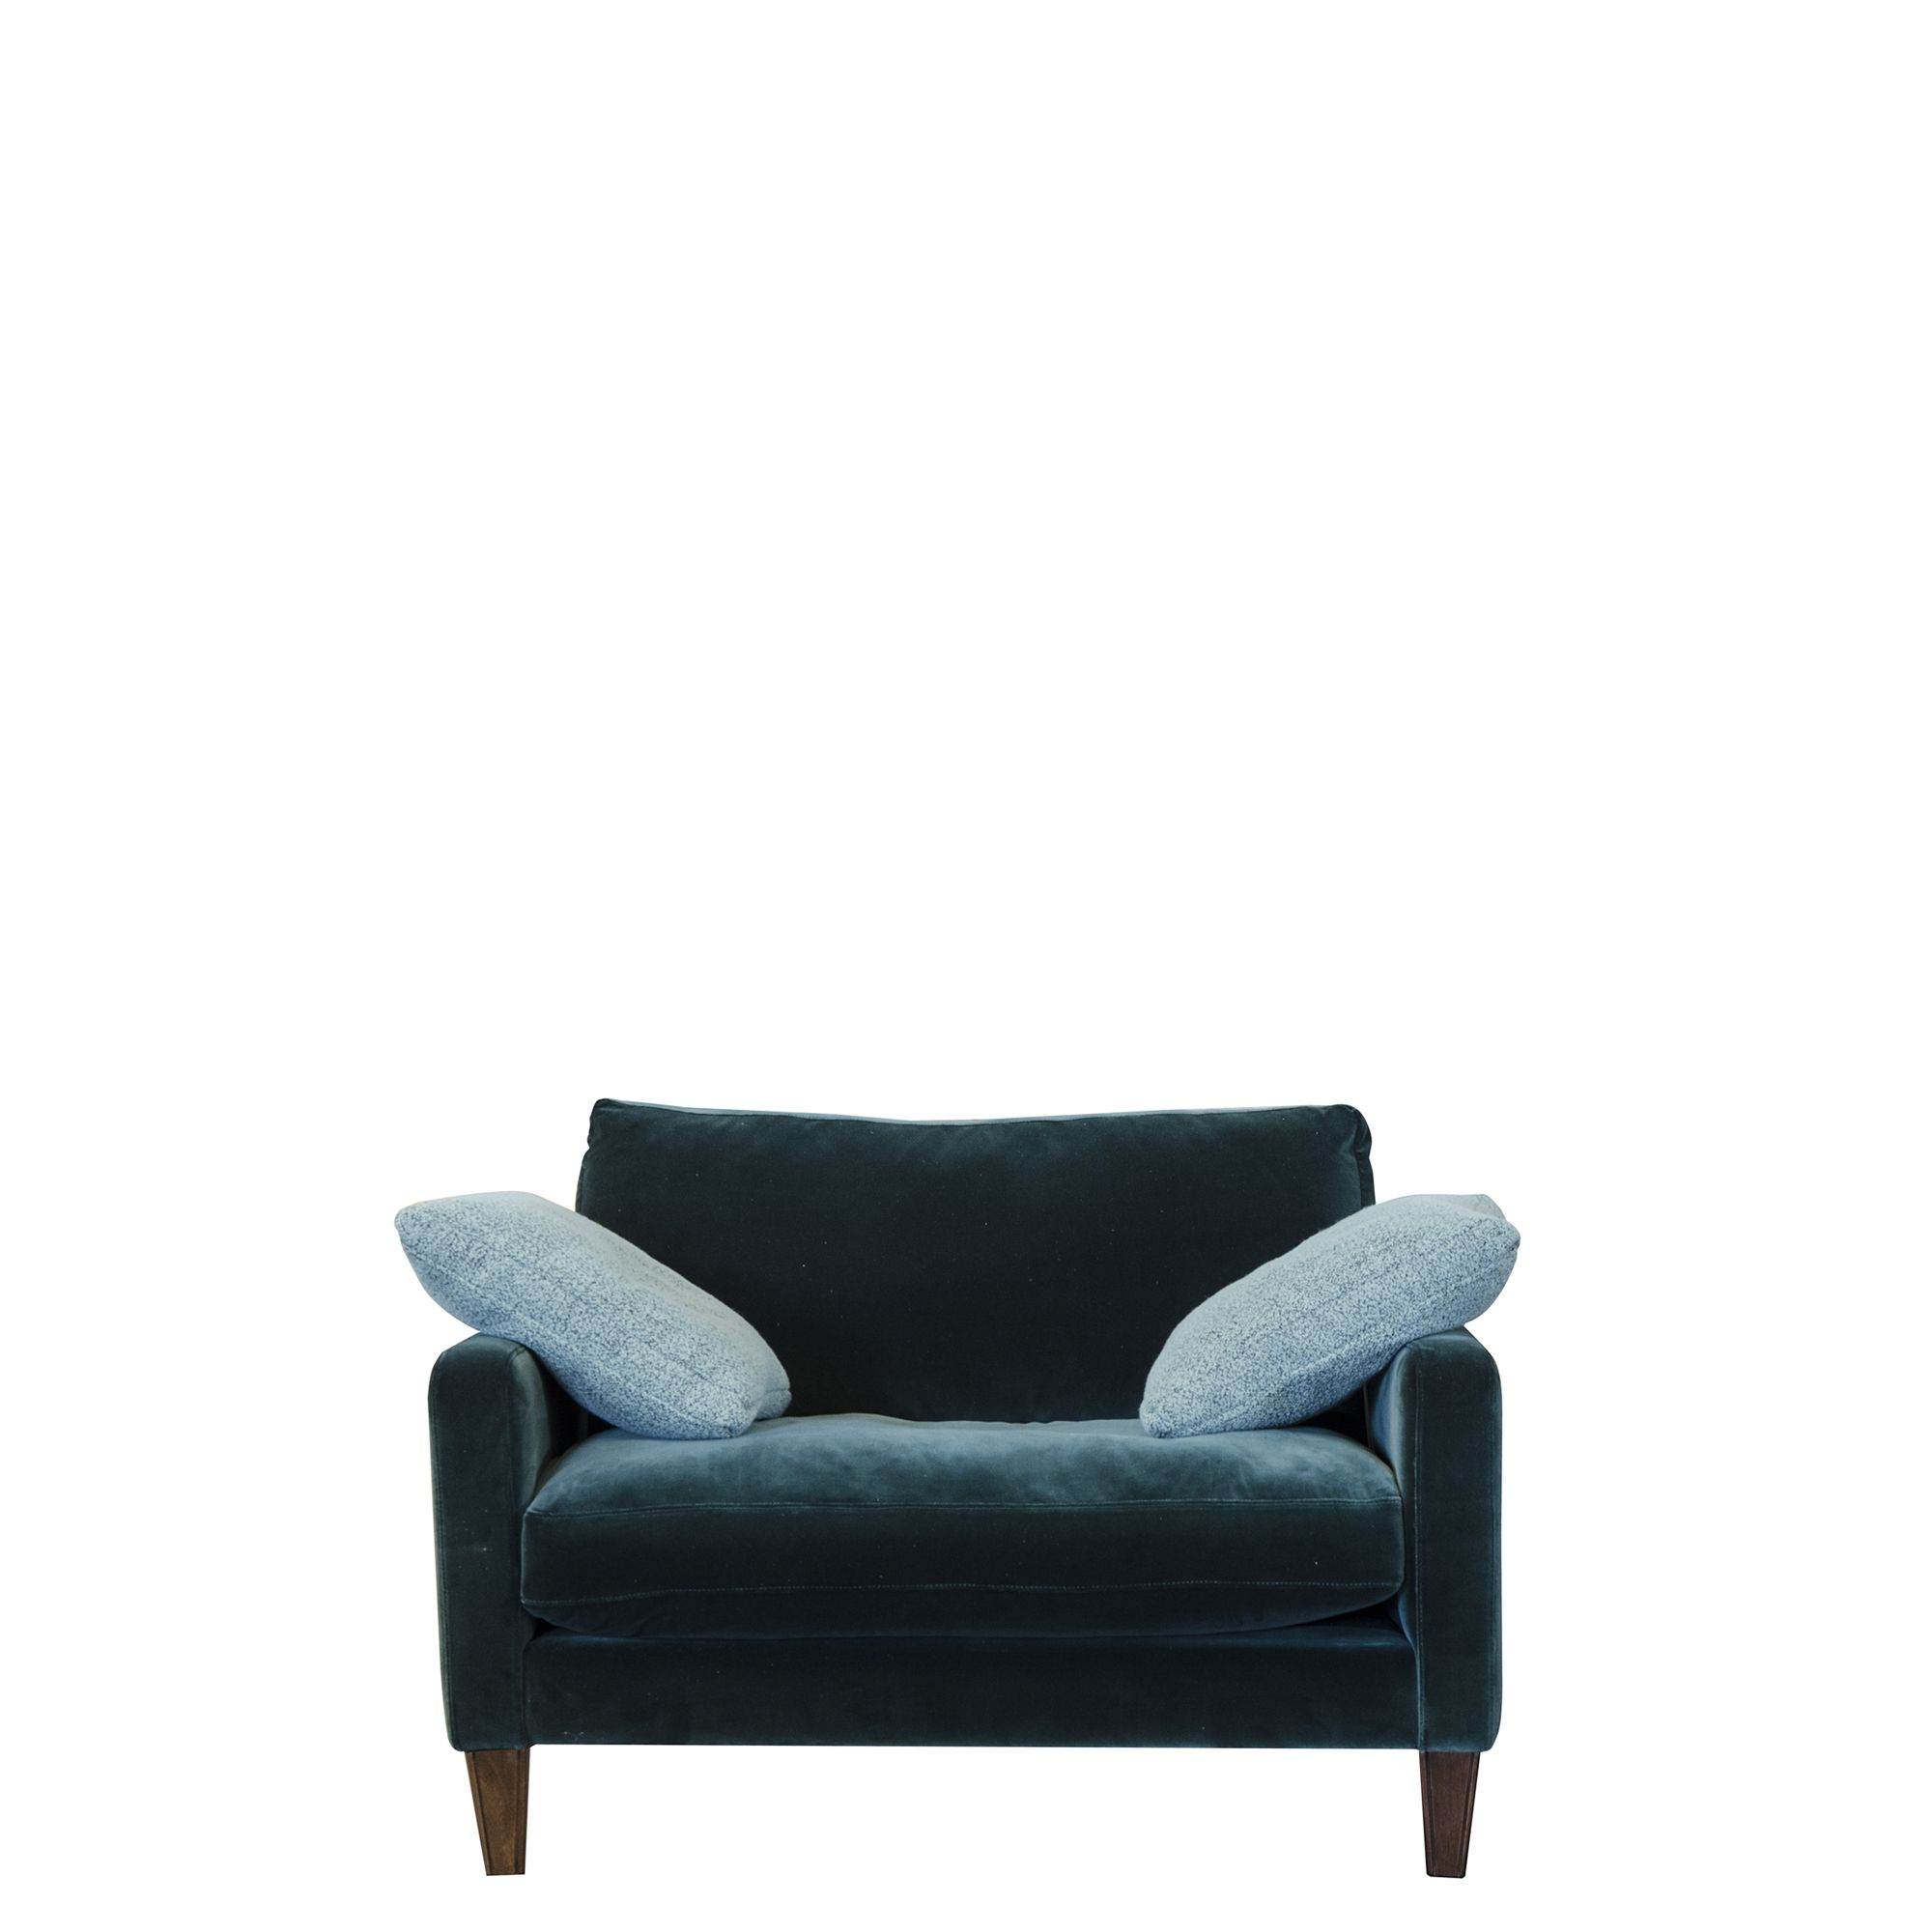 Mercier Velvet Snuggler, Lavish Emerald available online at Barker ...